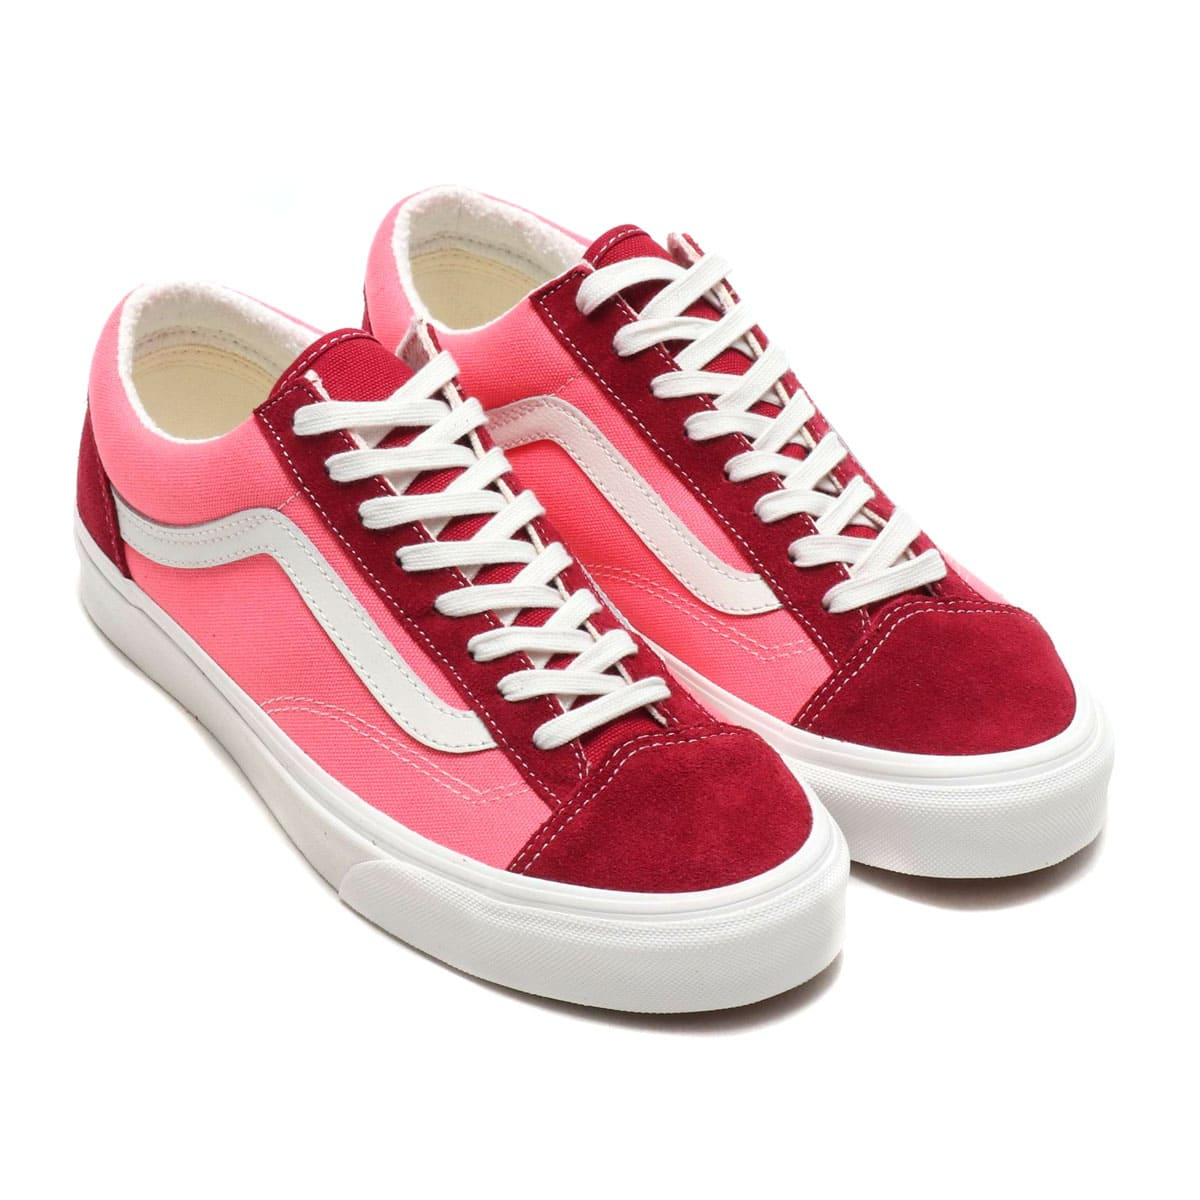 VANS STYLE 36 RUMBA RED 19SP-I_photo_large